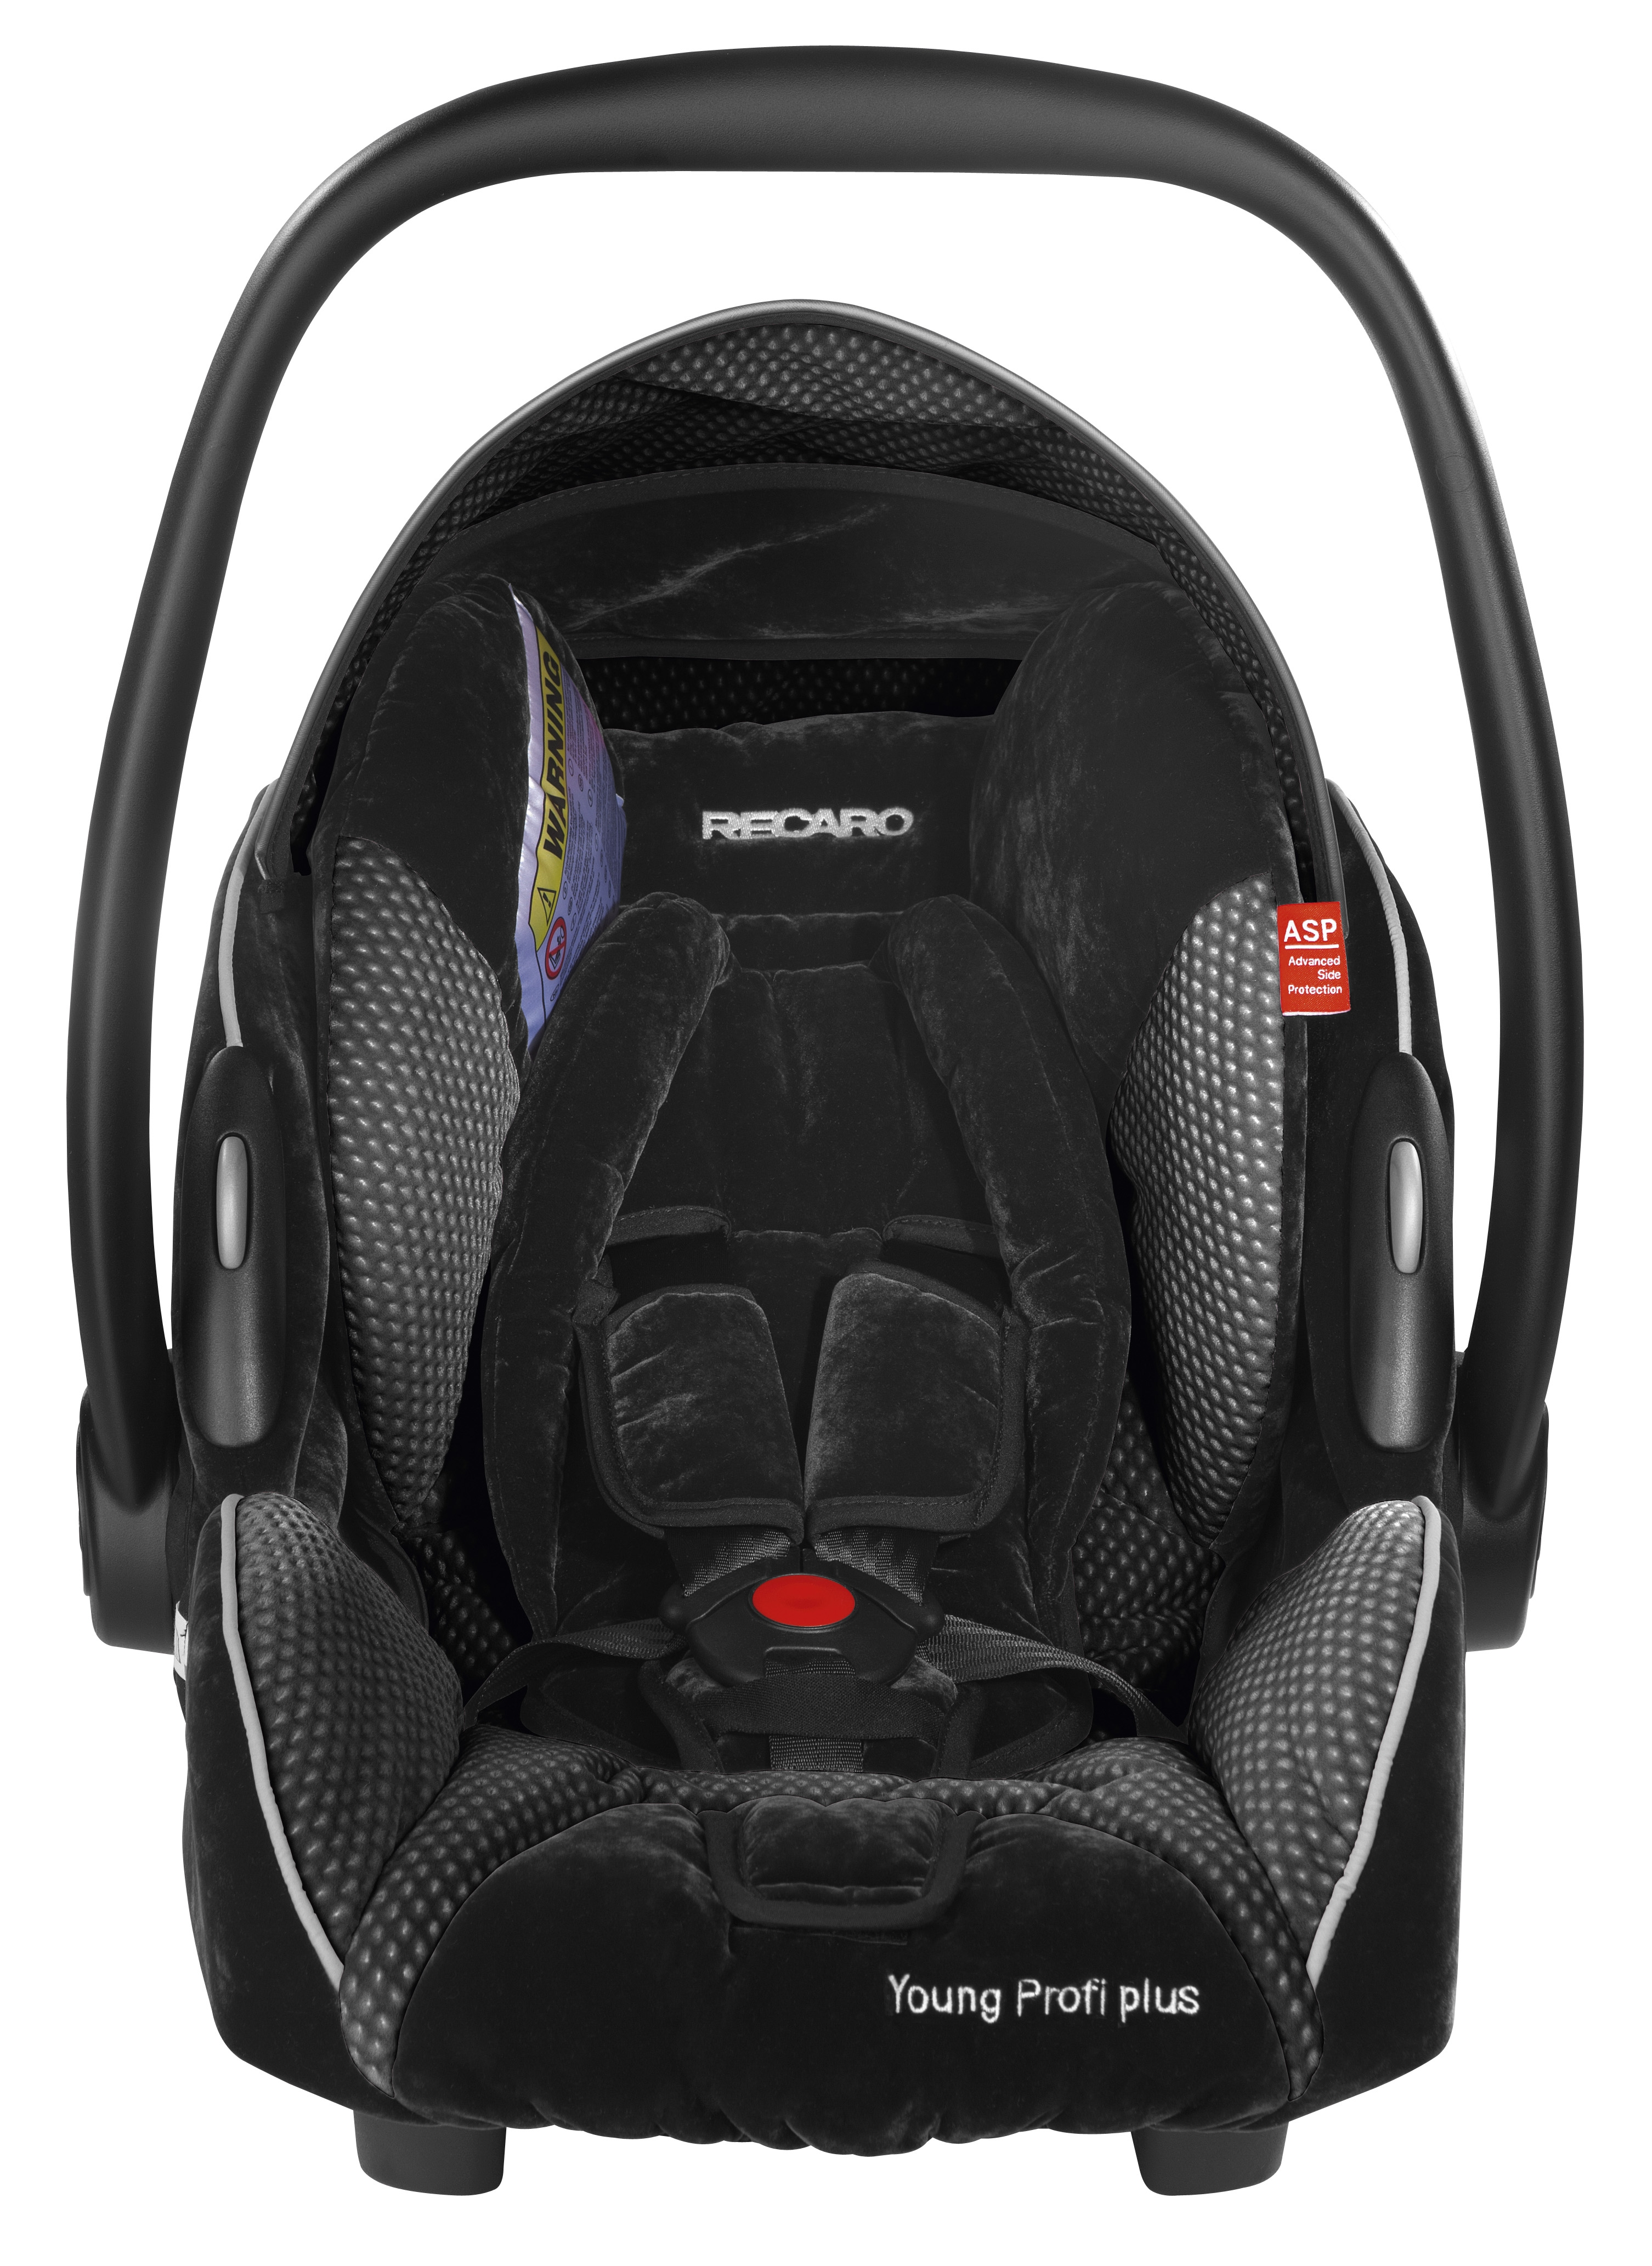 Recaro Young Profi Plus Infant Carrier Group 0/0+ [Microfibre Black]